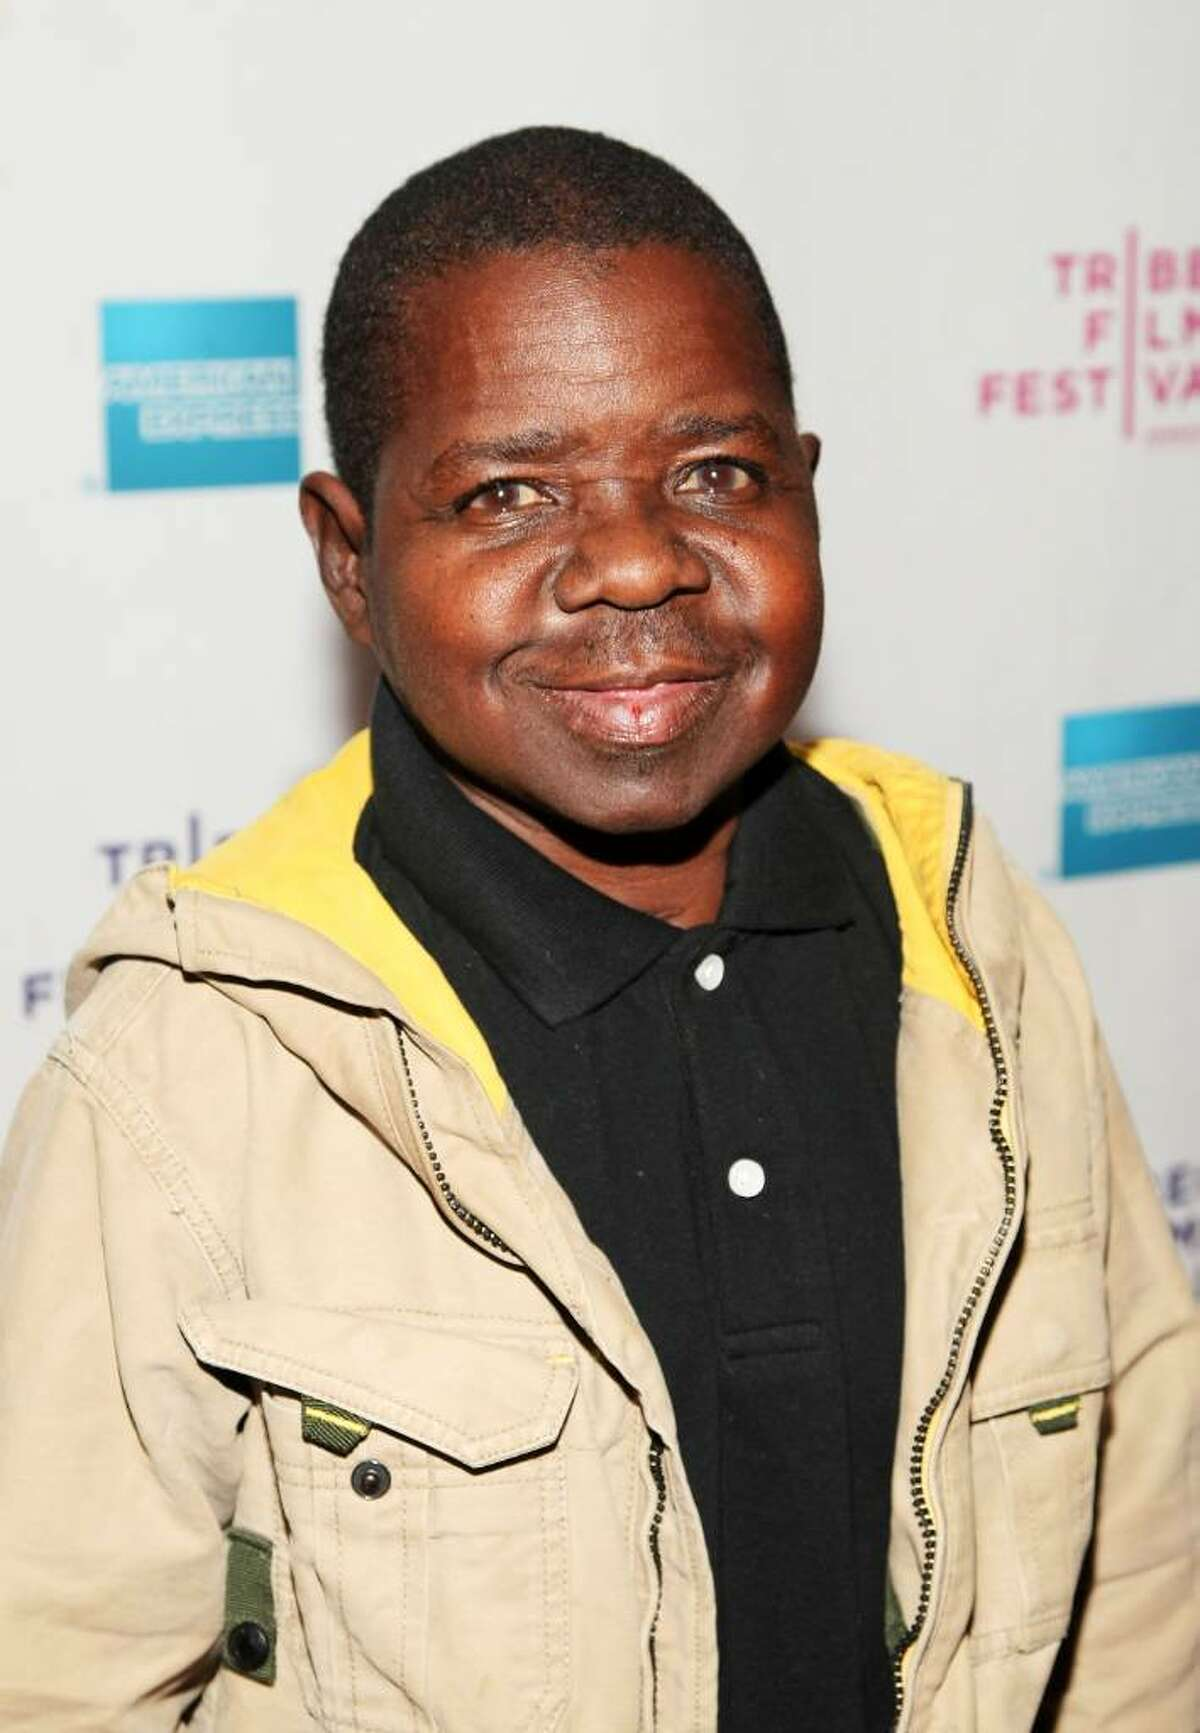 NEW YORK - APRIL 25: Actor Gary Coleman attends the premiere of